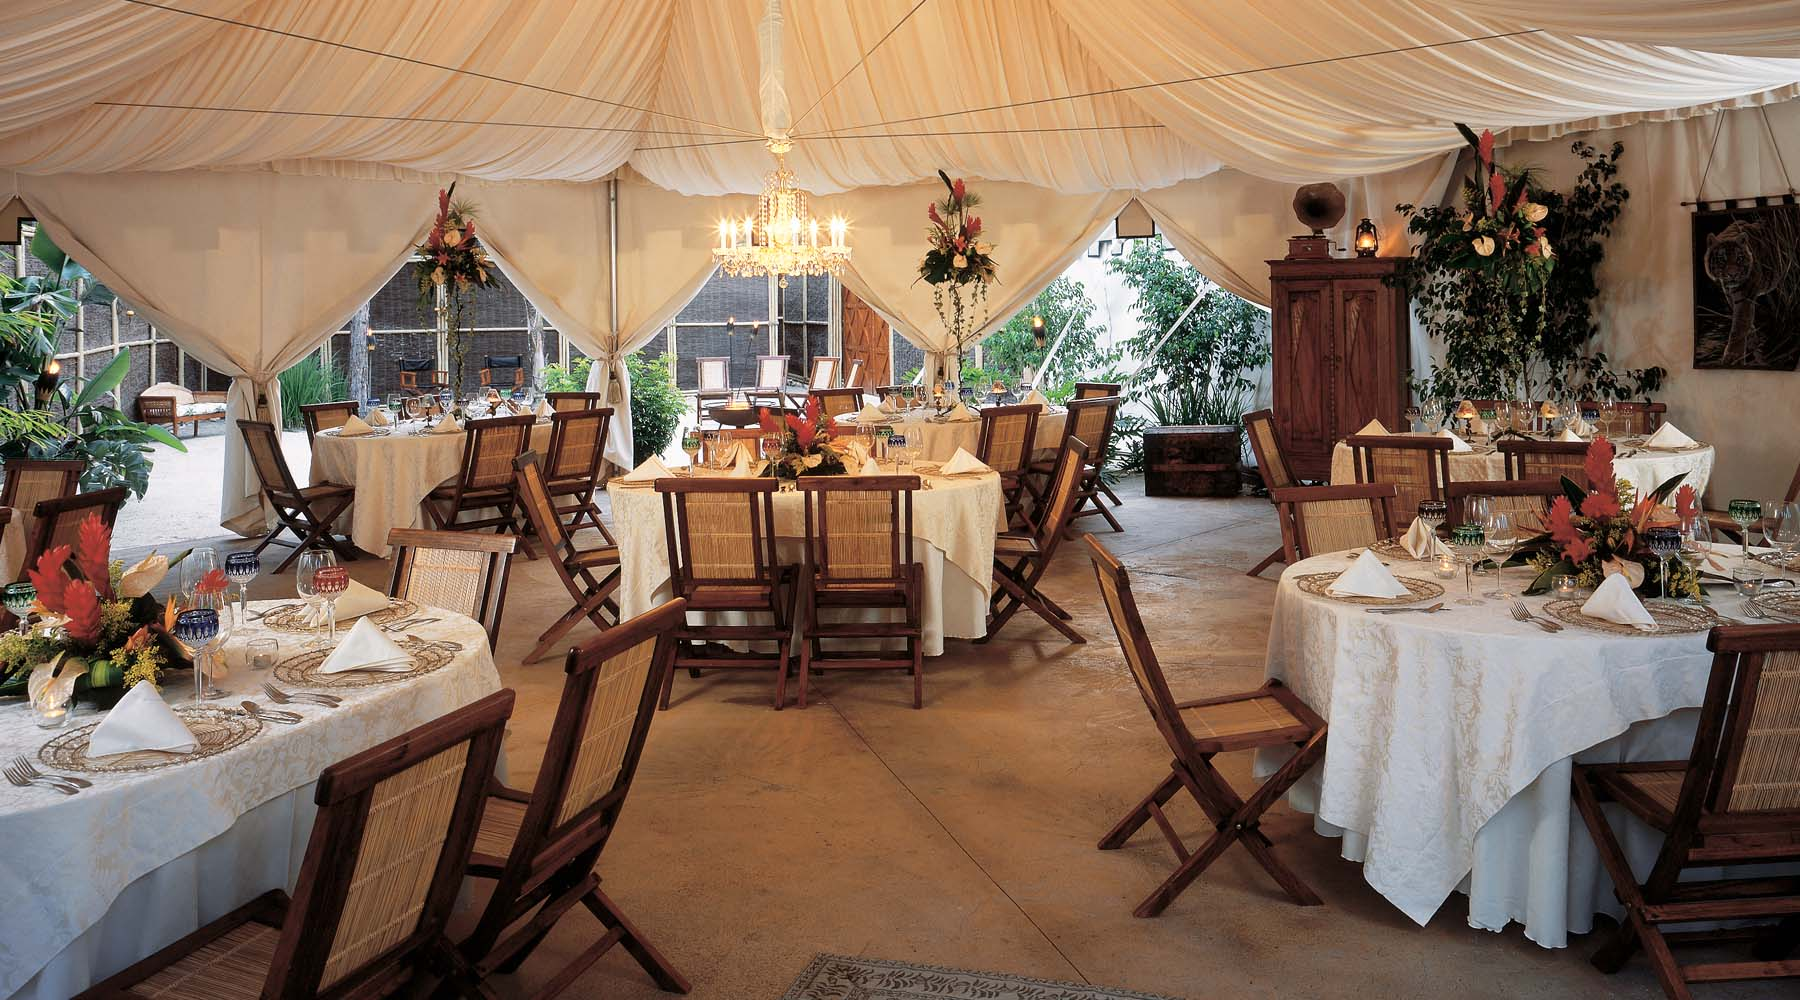 LEARN ABOUT NGALA EVENT FACILITIES